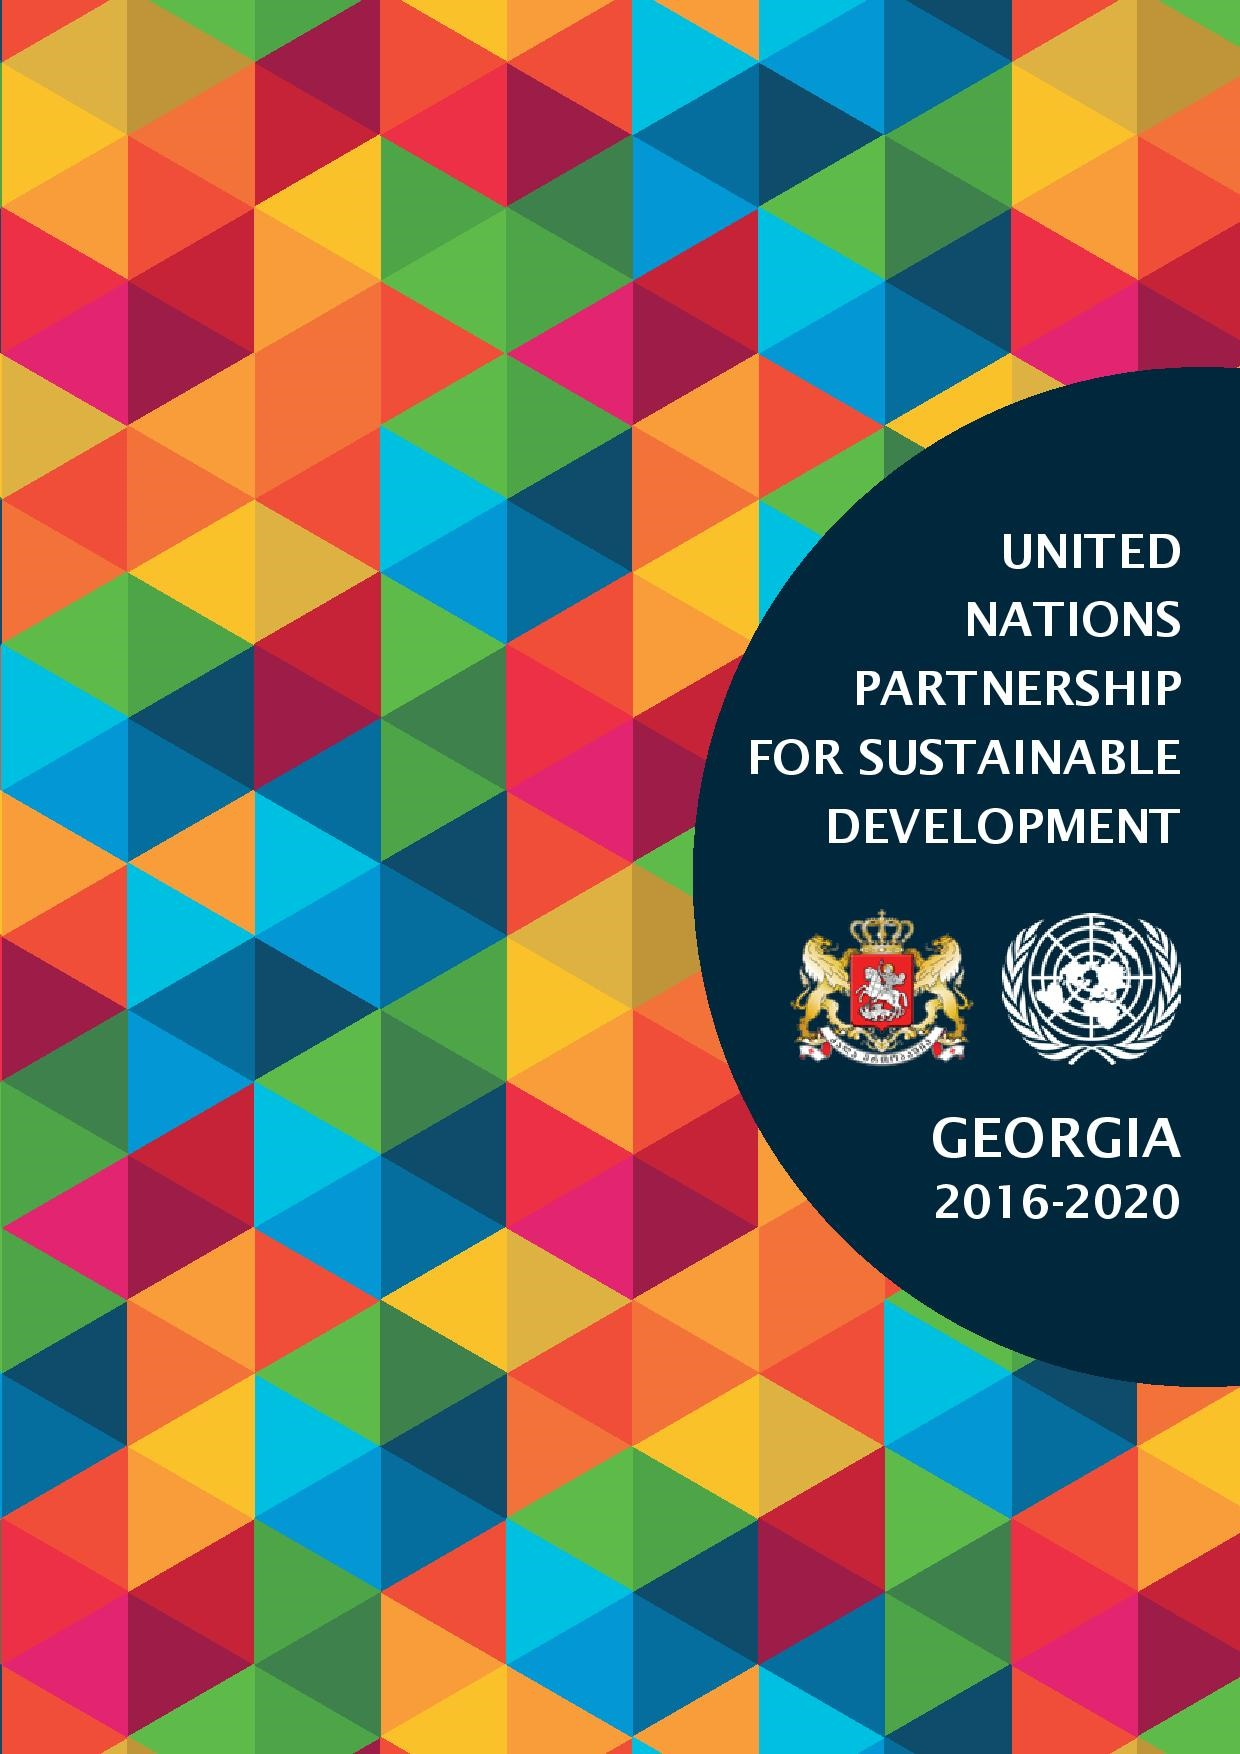 2016-2020 United Nations Partnership for Sustainable Development (UNPSD)